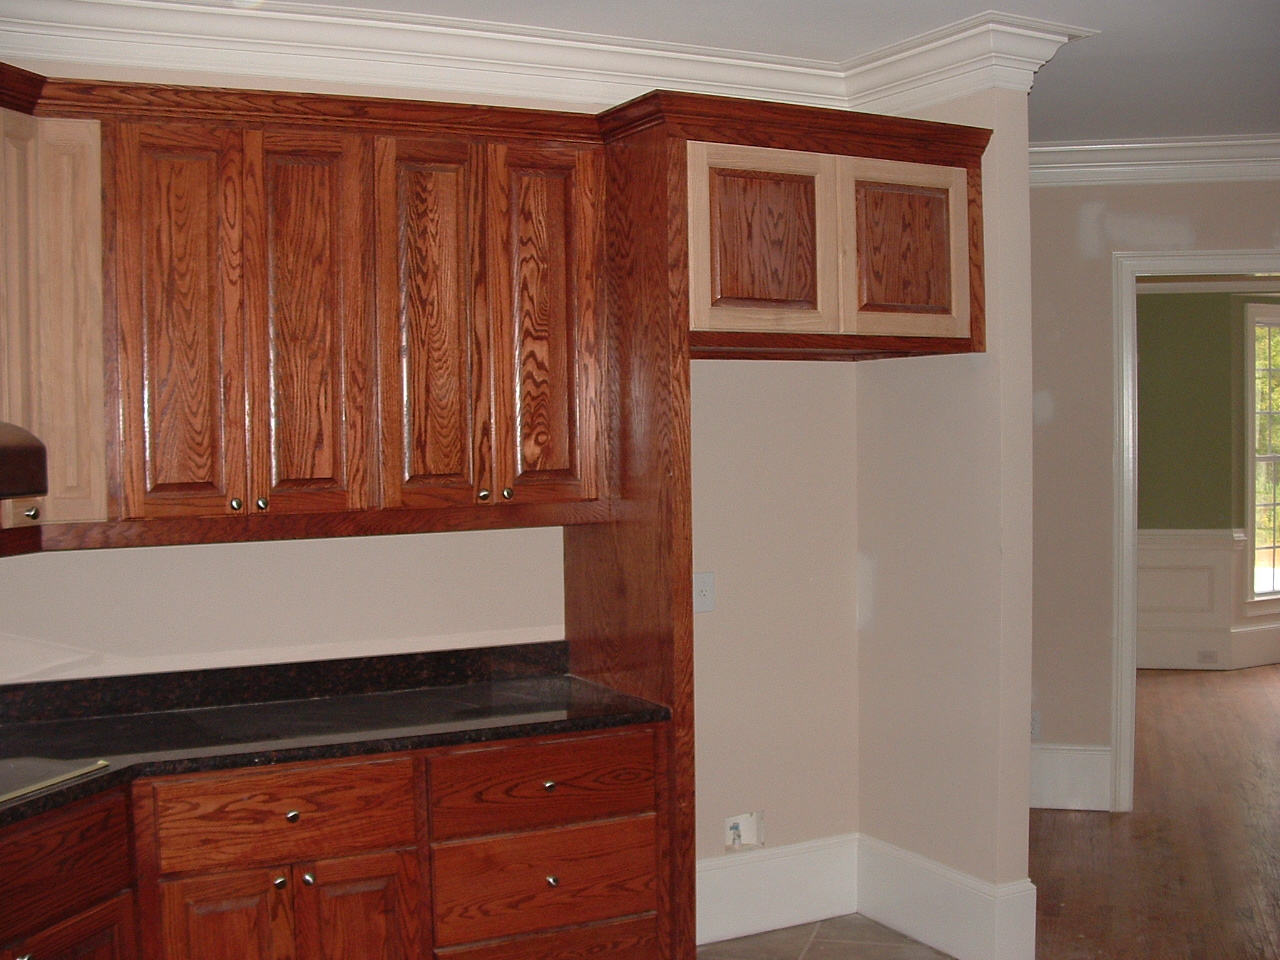 Stained Kitchen Cabinets With Pocket Doors Over Fridge Closed 1280x960